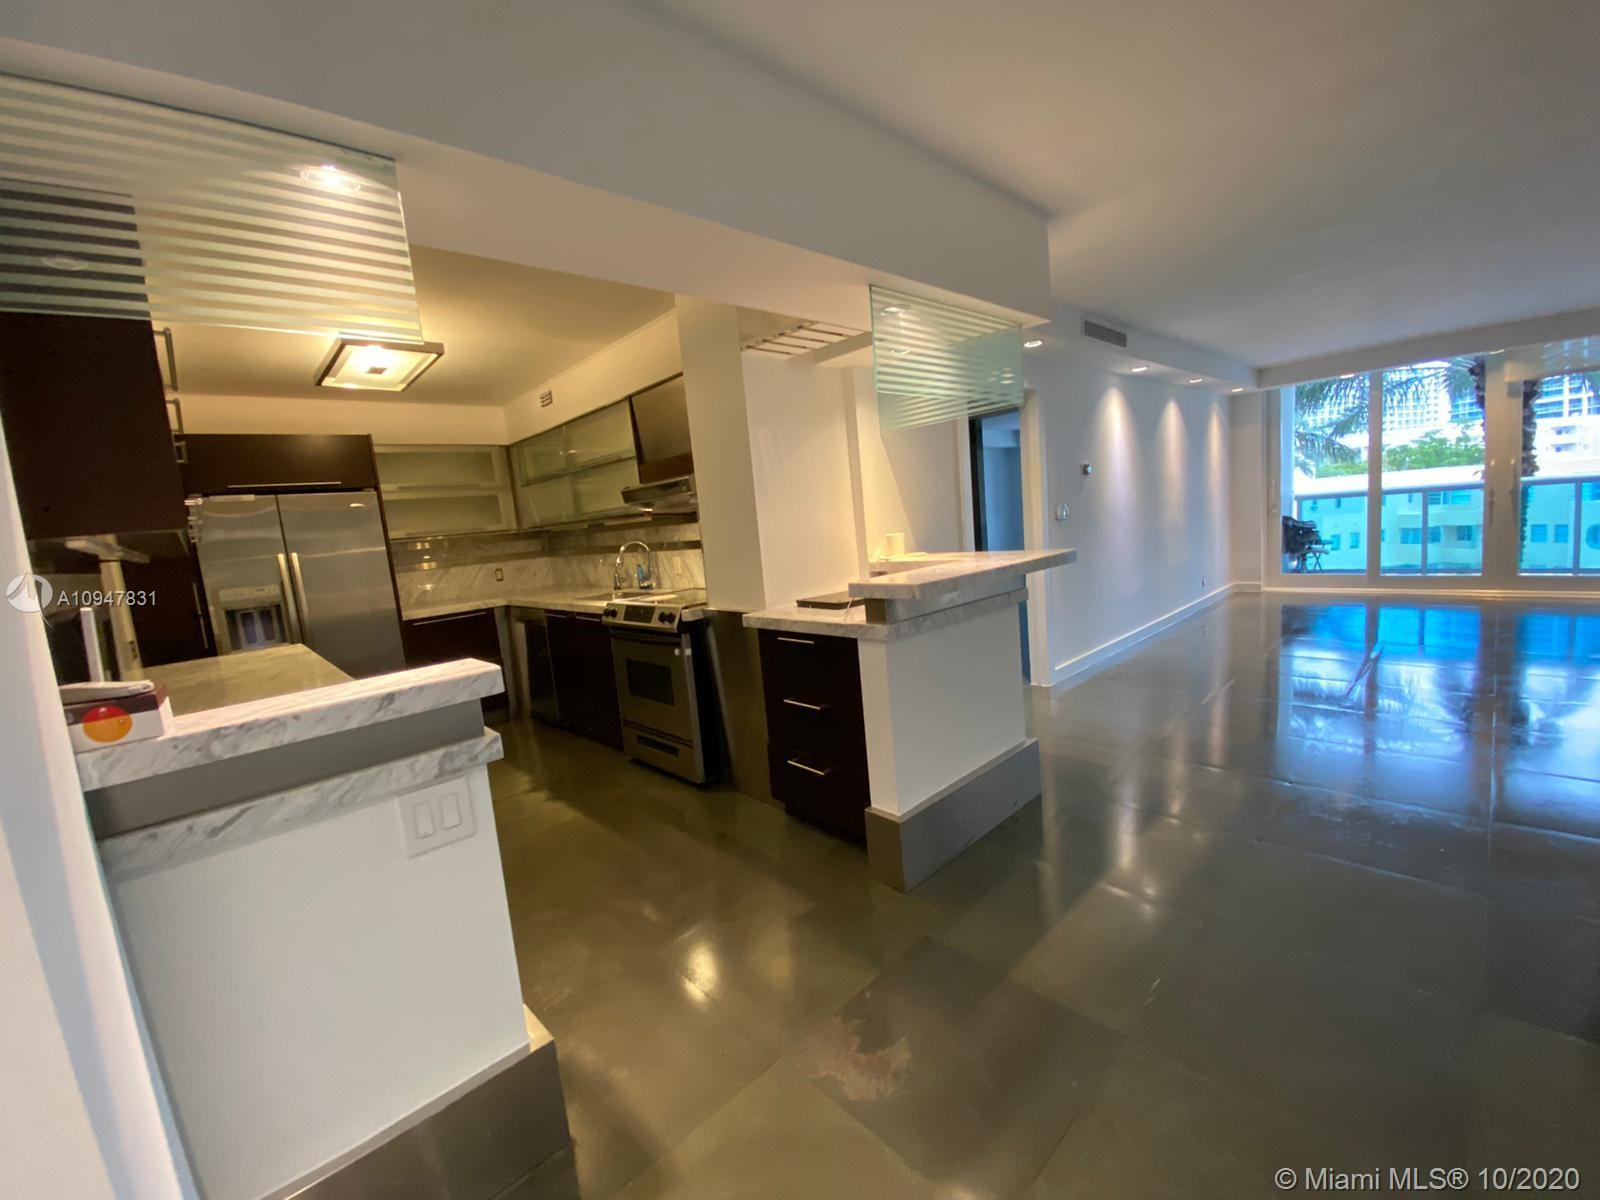 UNIQUE, SPACIOUS & RENOVATED 3/2 CONDO IN AQUASOL, NICELY CONVERTED TO 3 BEDROOMS & TWO FULL BATHS.